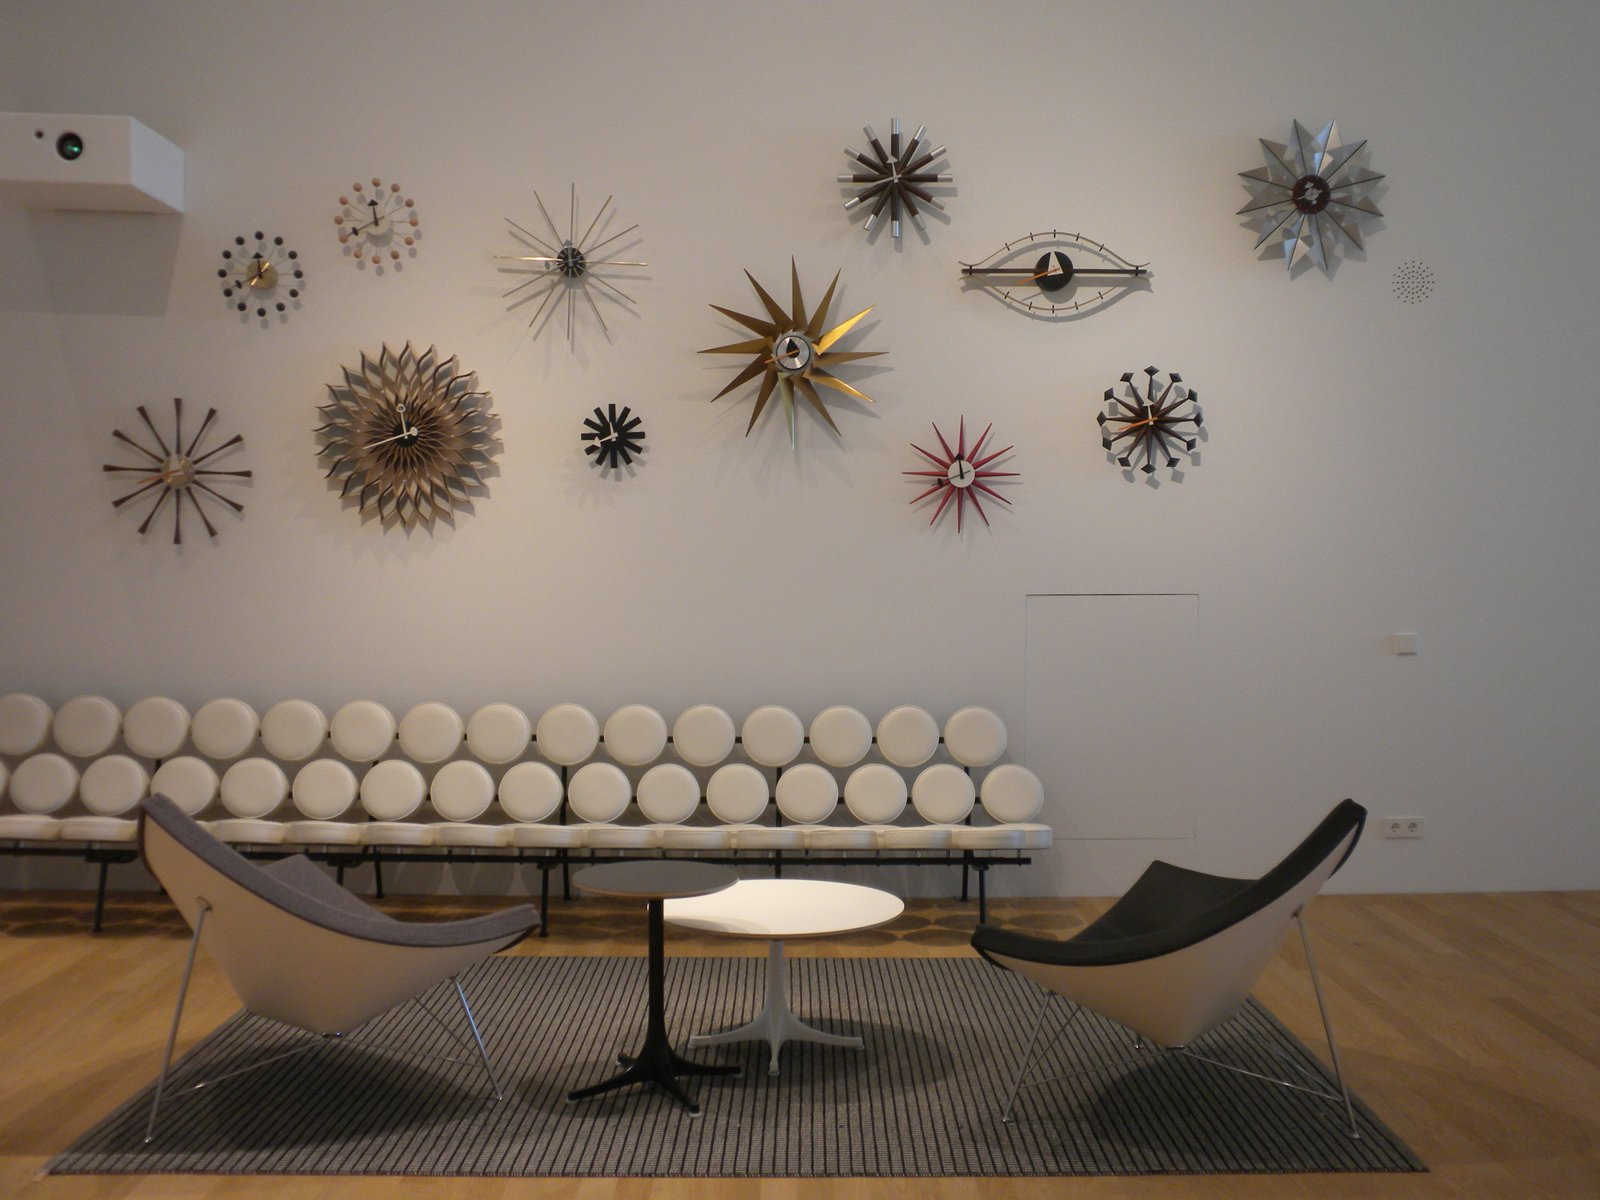 The area dedicated to designer George Nelson boasts the longest Marshmallow Sofa I've ever seen. Next to it are two of Nelson's Coconut chairs, designed in 1955, and above are an array of clocks by his hand.